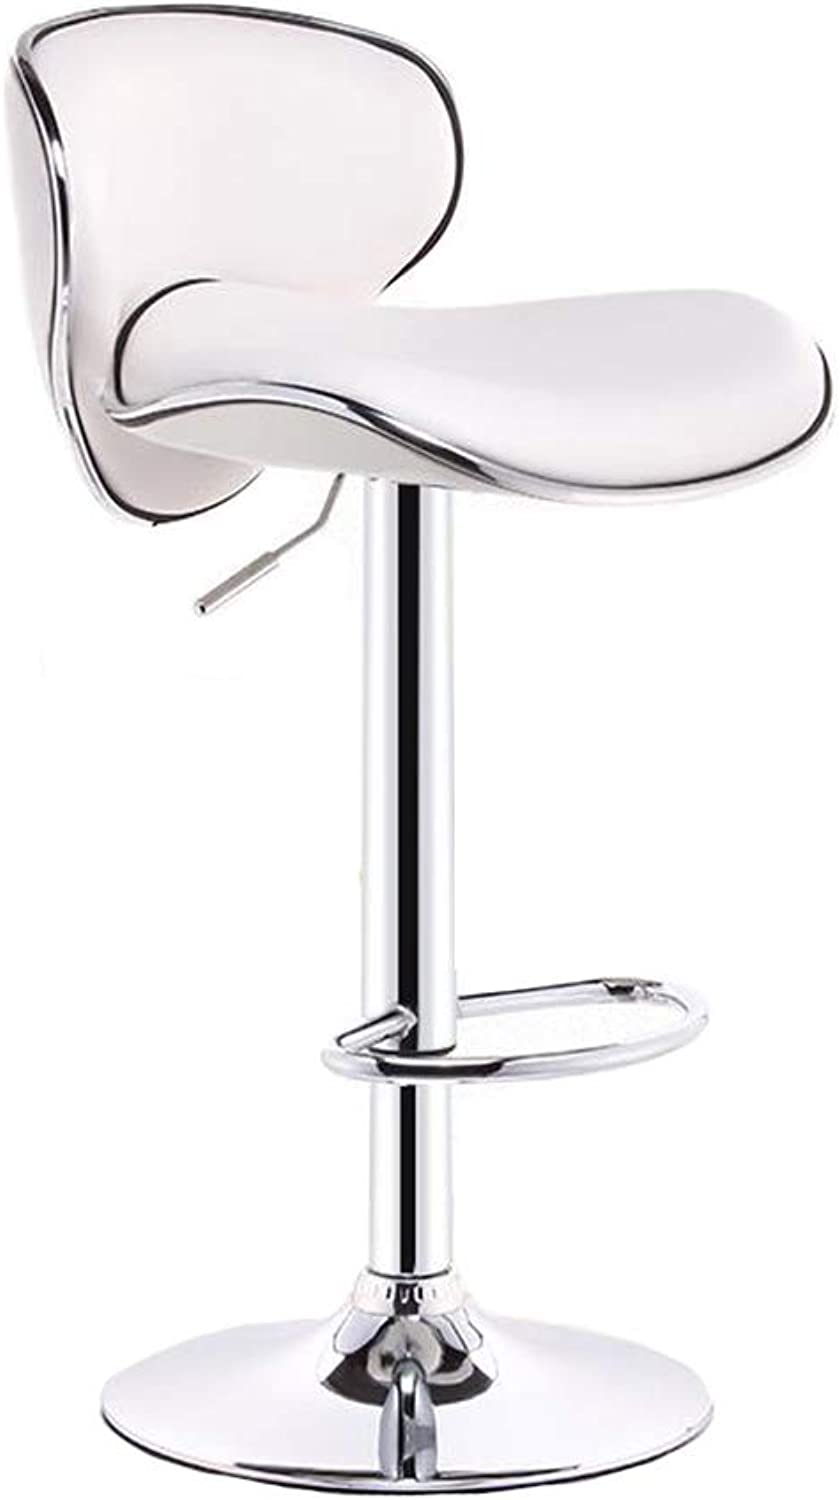 Dall Bar Stool PU Exterior Adjustable Gas Lift Chrome Plated Footrest Base Counter Home (color   White)